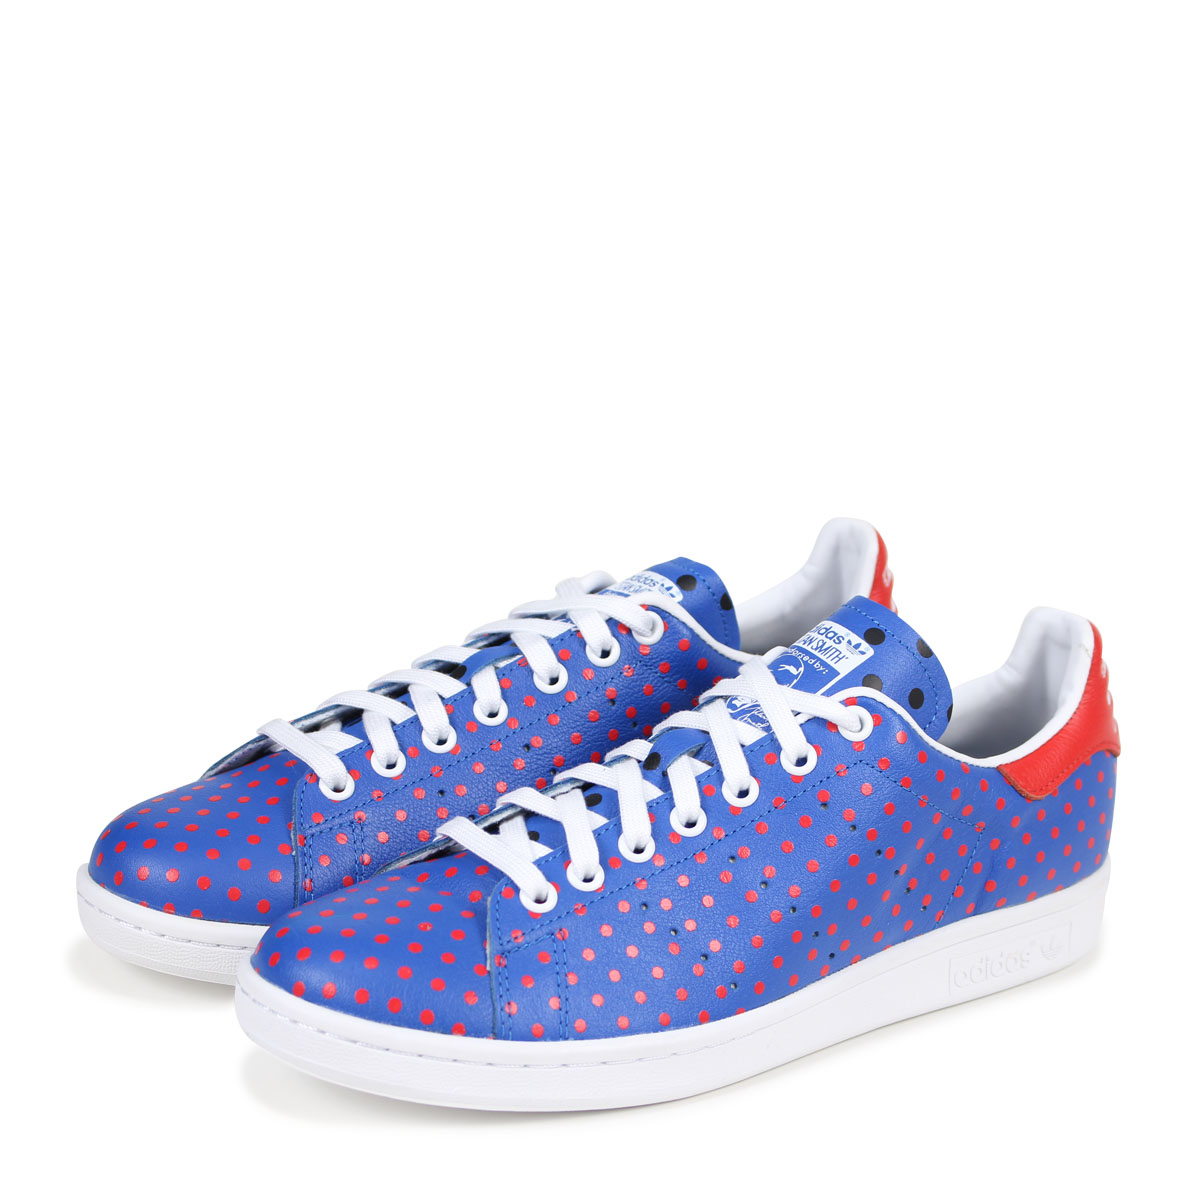 online retailer a0c65 6609a adidas Originals PW STAN SMITH SPD Adidas Stan Smith sneakers Farrell  Williams men collaboration B25400 blue originals [load planned Shinnyu load  in ...